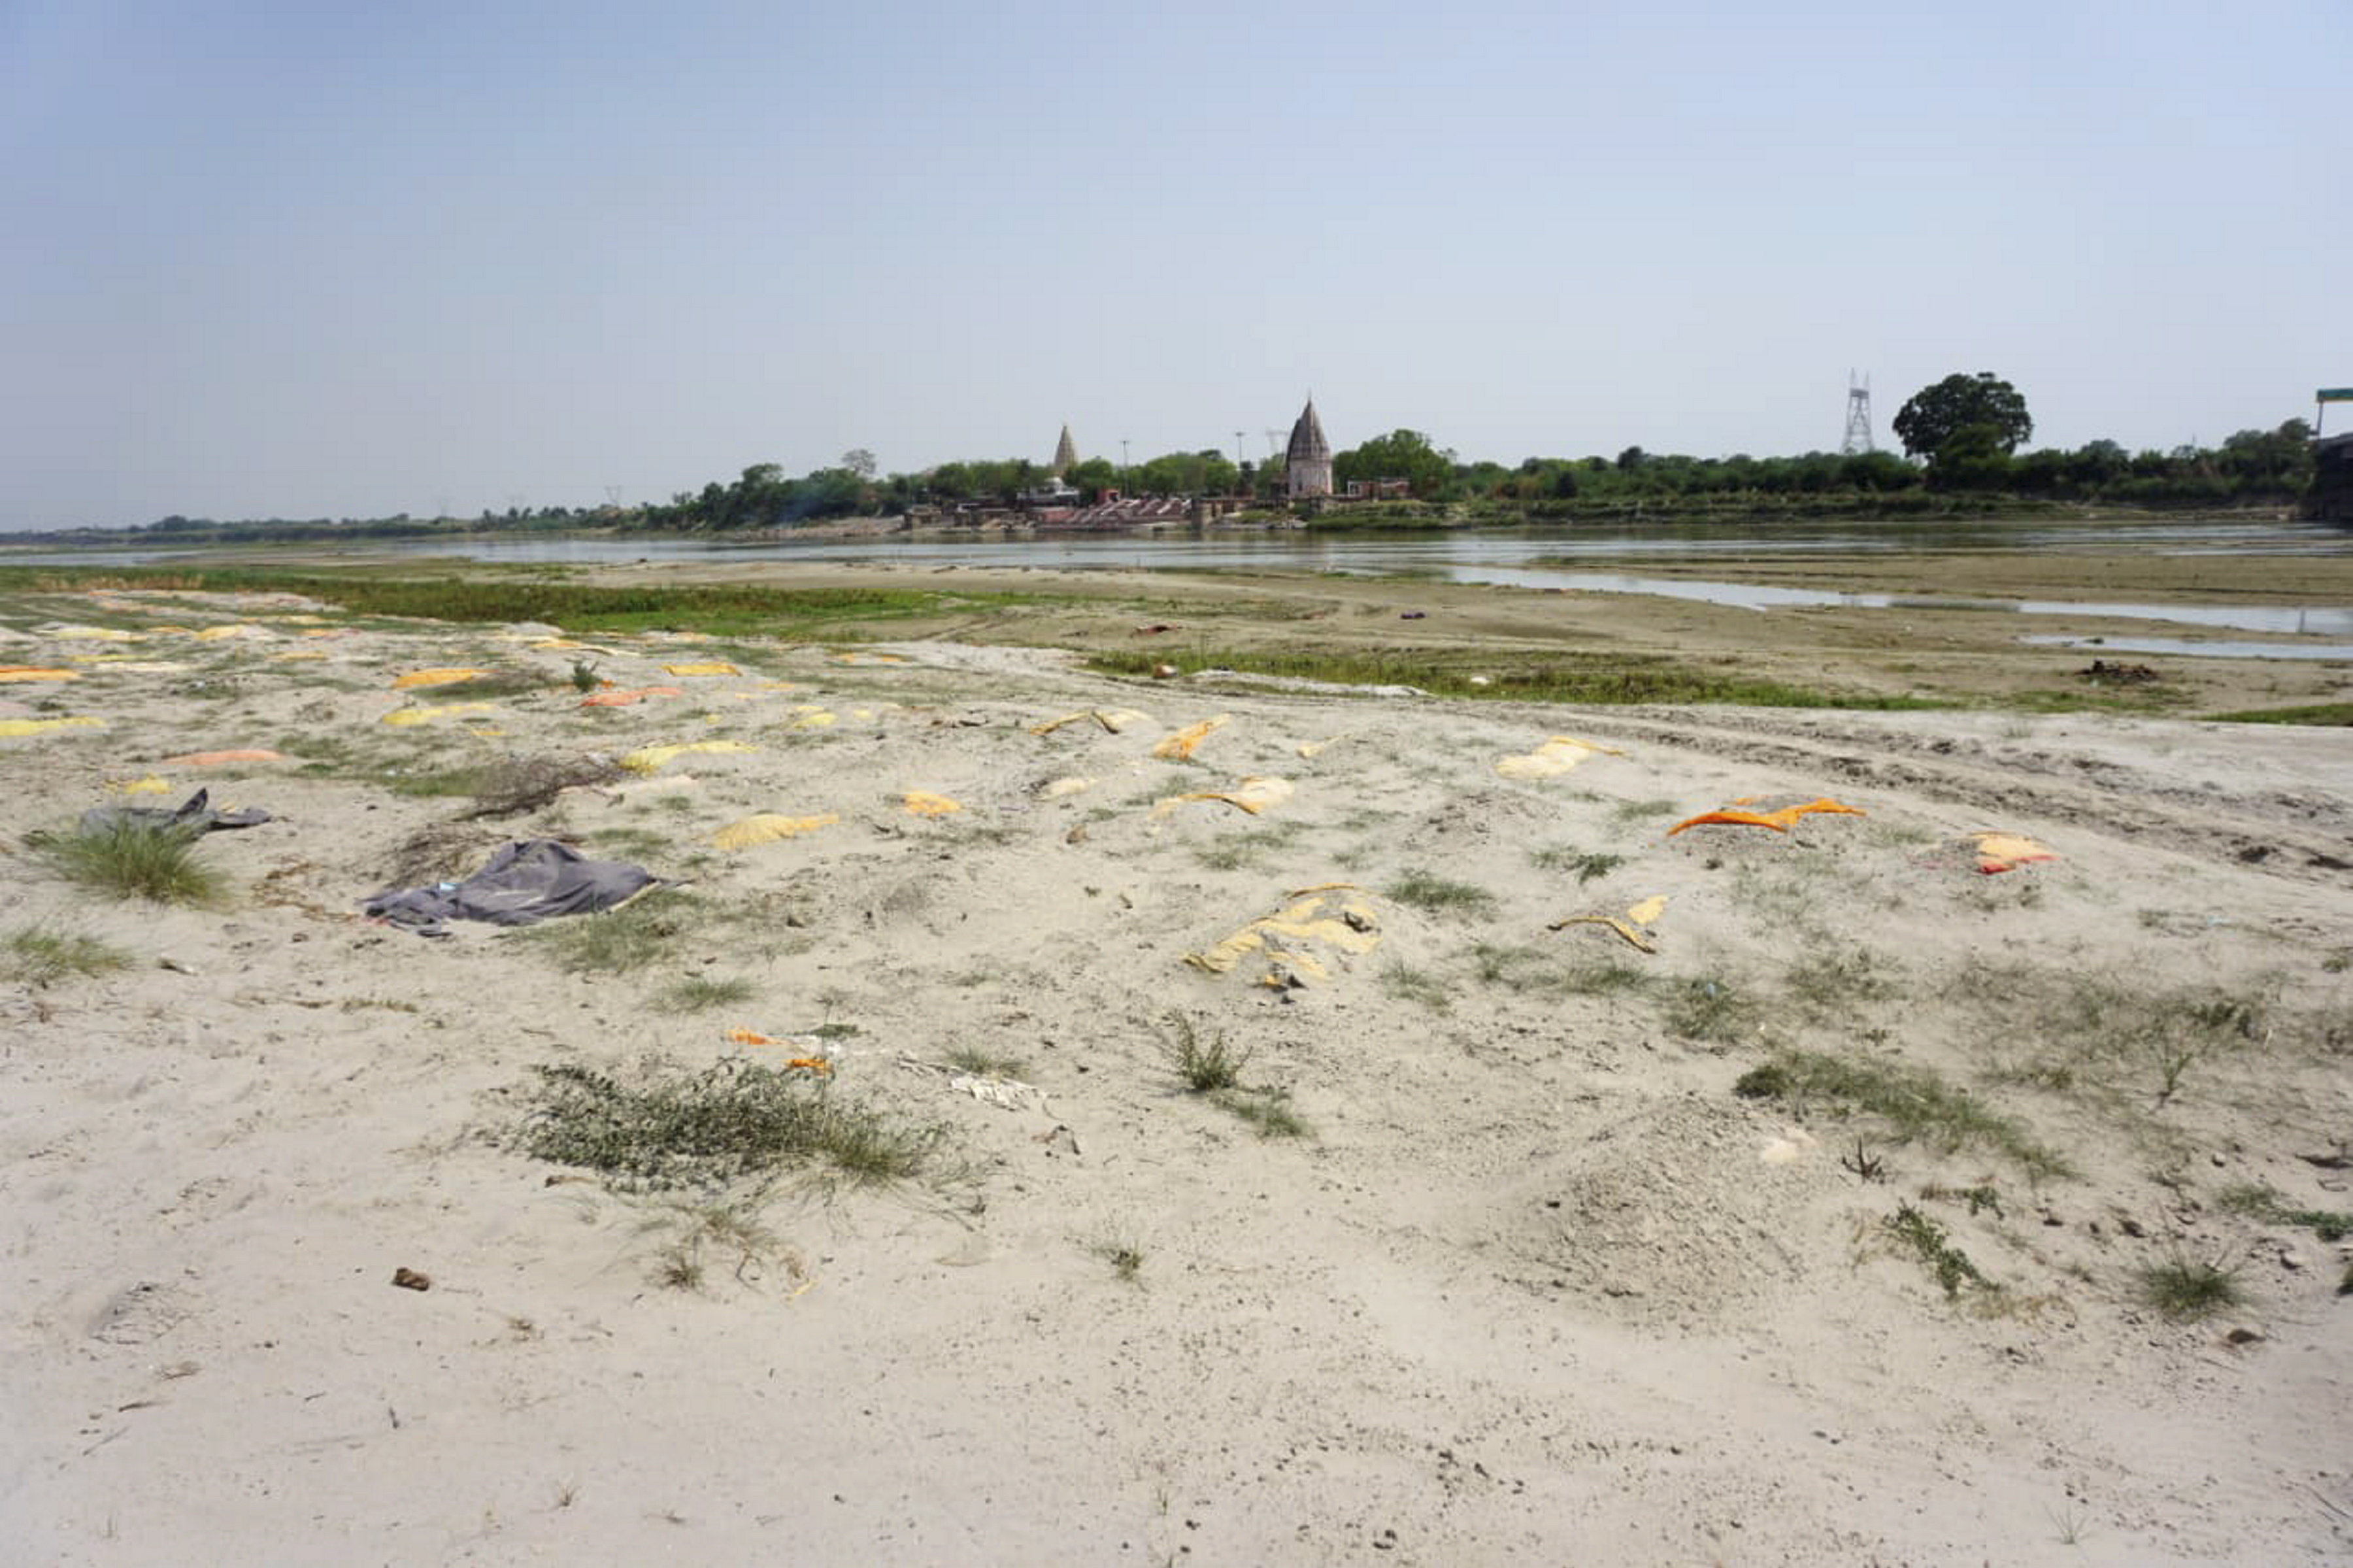 Kanpur: More than 300 bodies found buried near Ganga in Shivrajpur, Kanpur, Friday, May 14, 2021. (PTI Photo)(PTI05_14_2021_000193B)